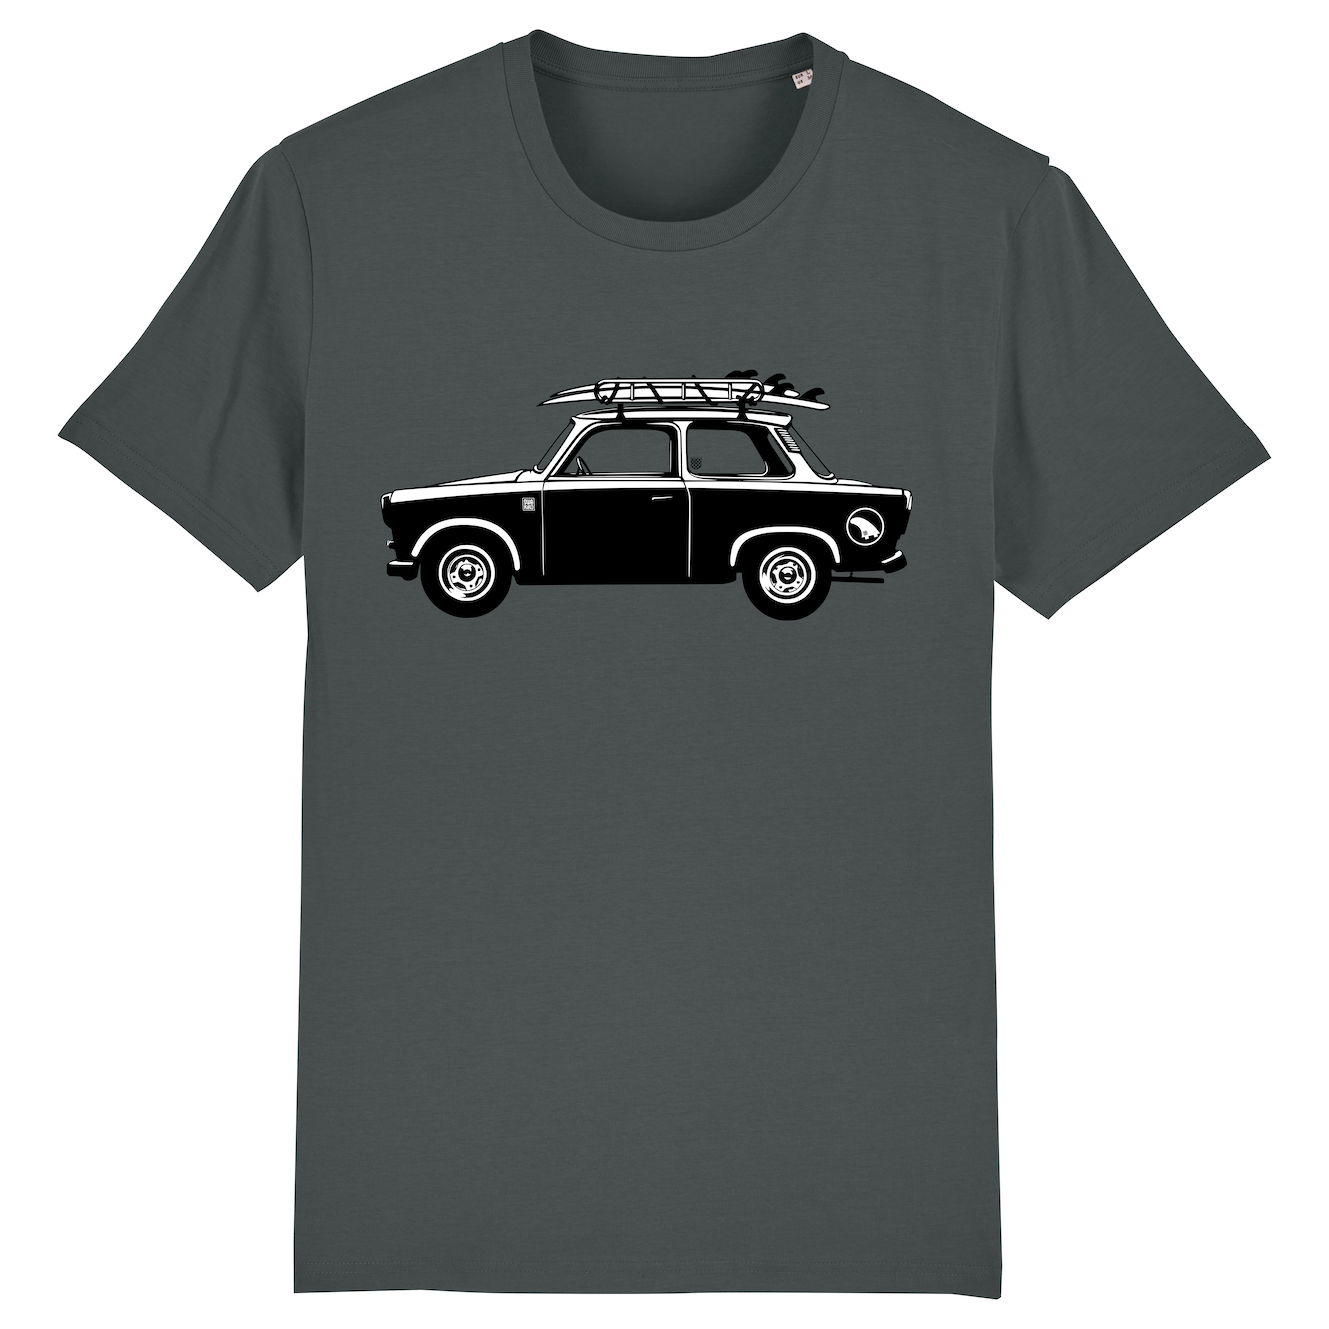 Surf t-shirt men anthracite, Car with surfboard